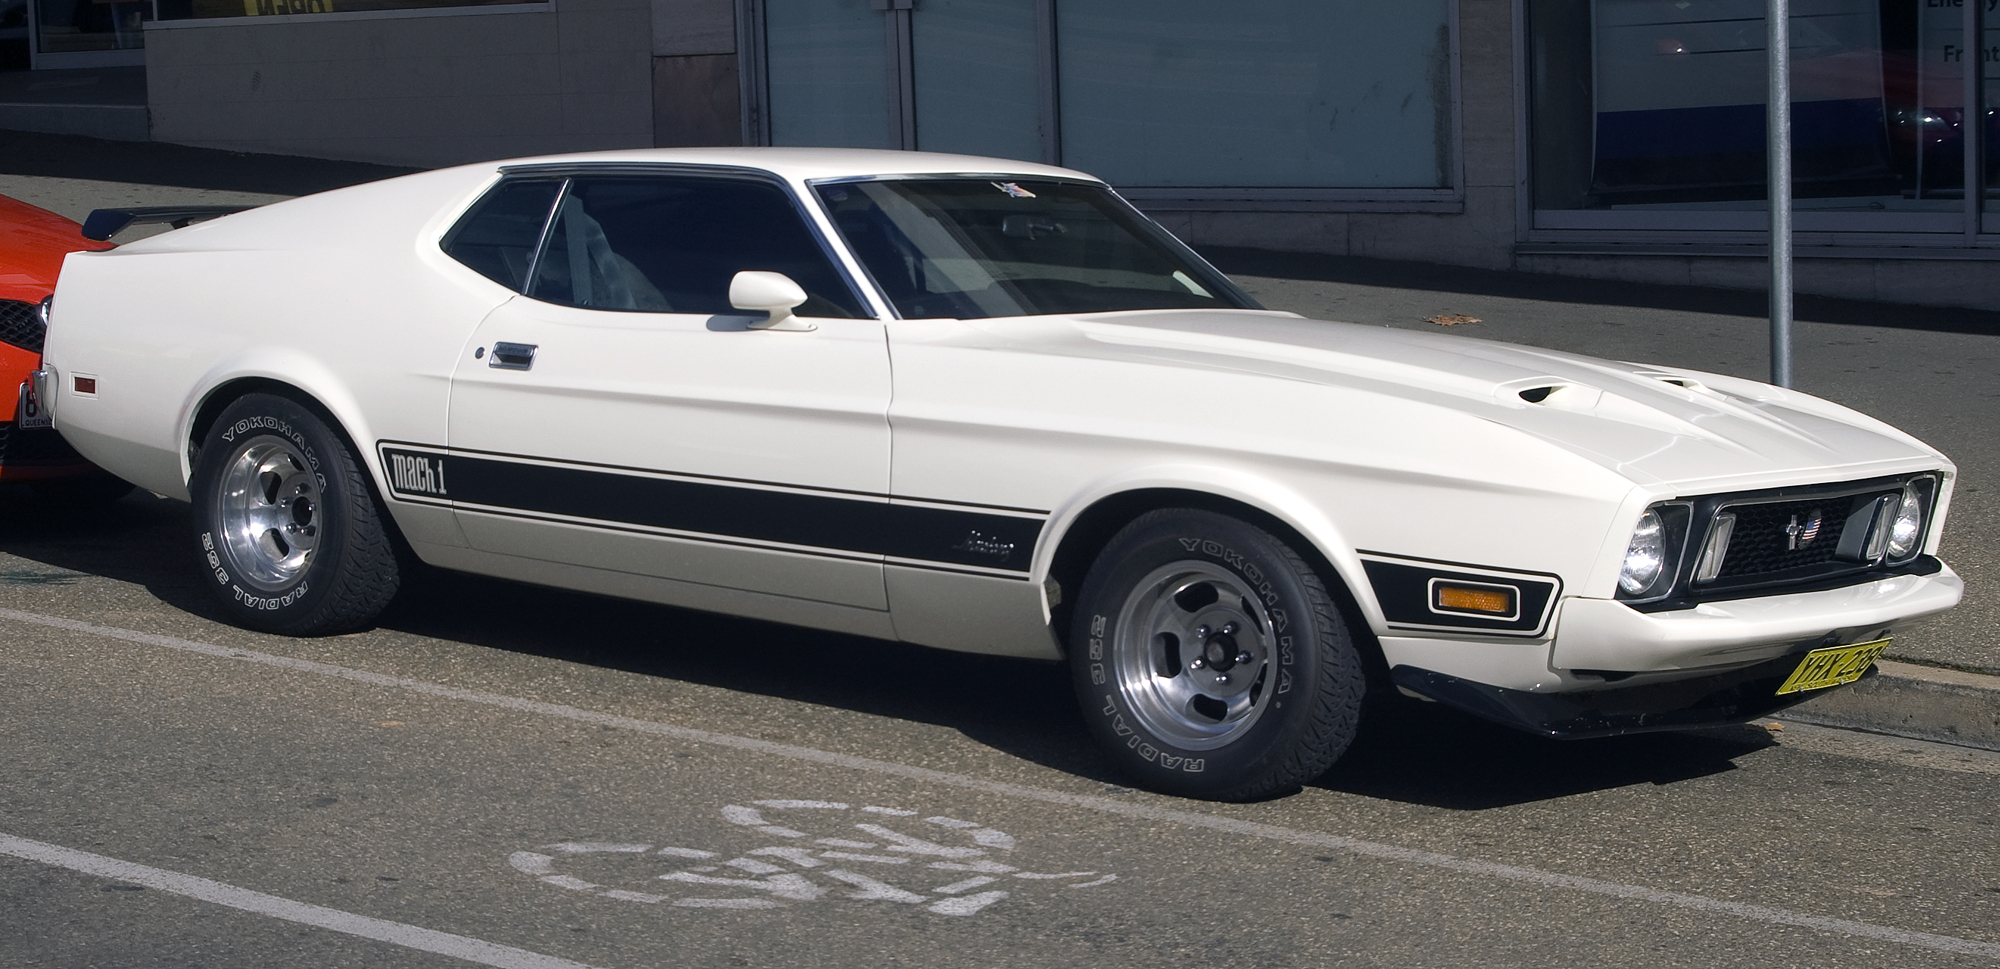 84 best images about mach 1 1973 on Pinterest  Ford mustangs